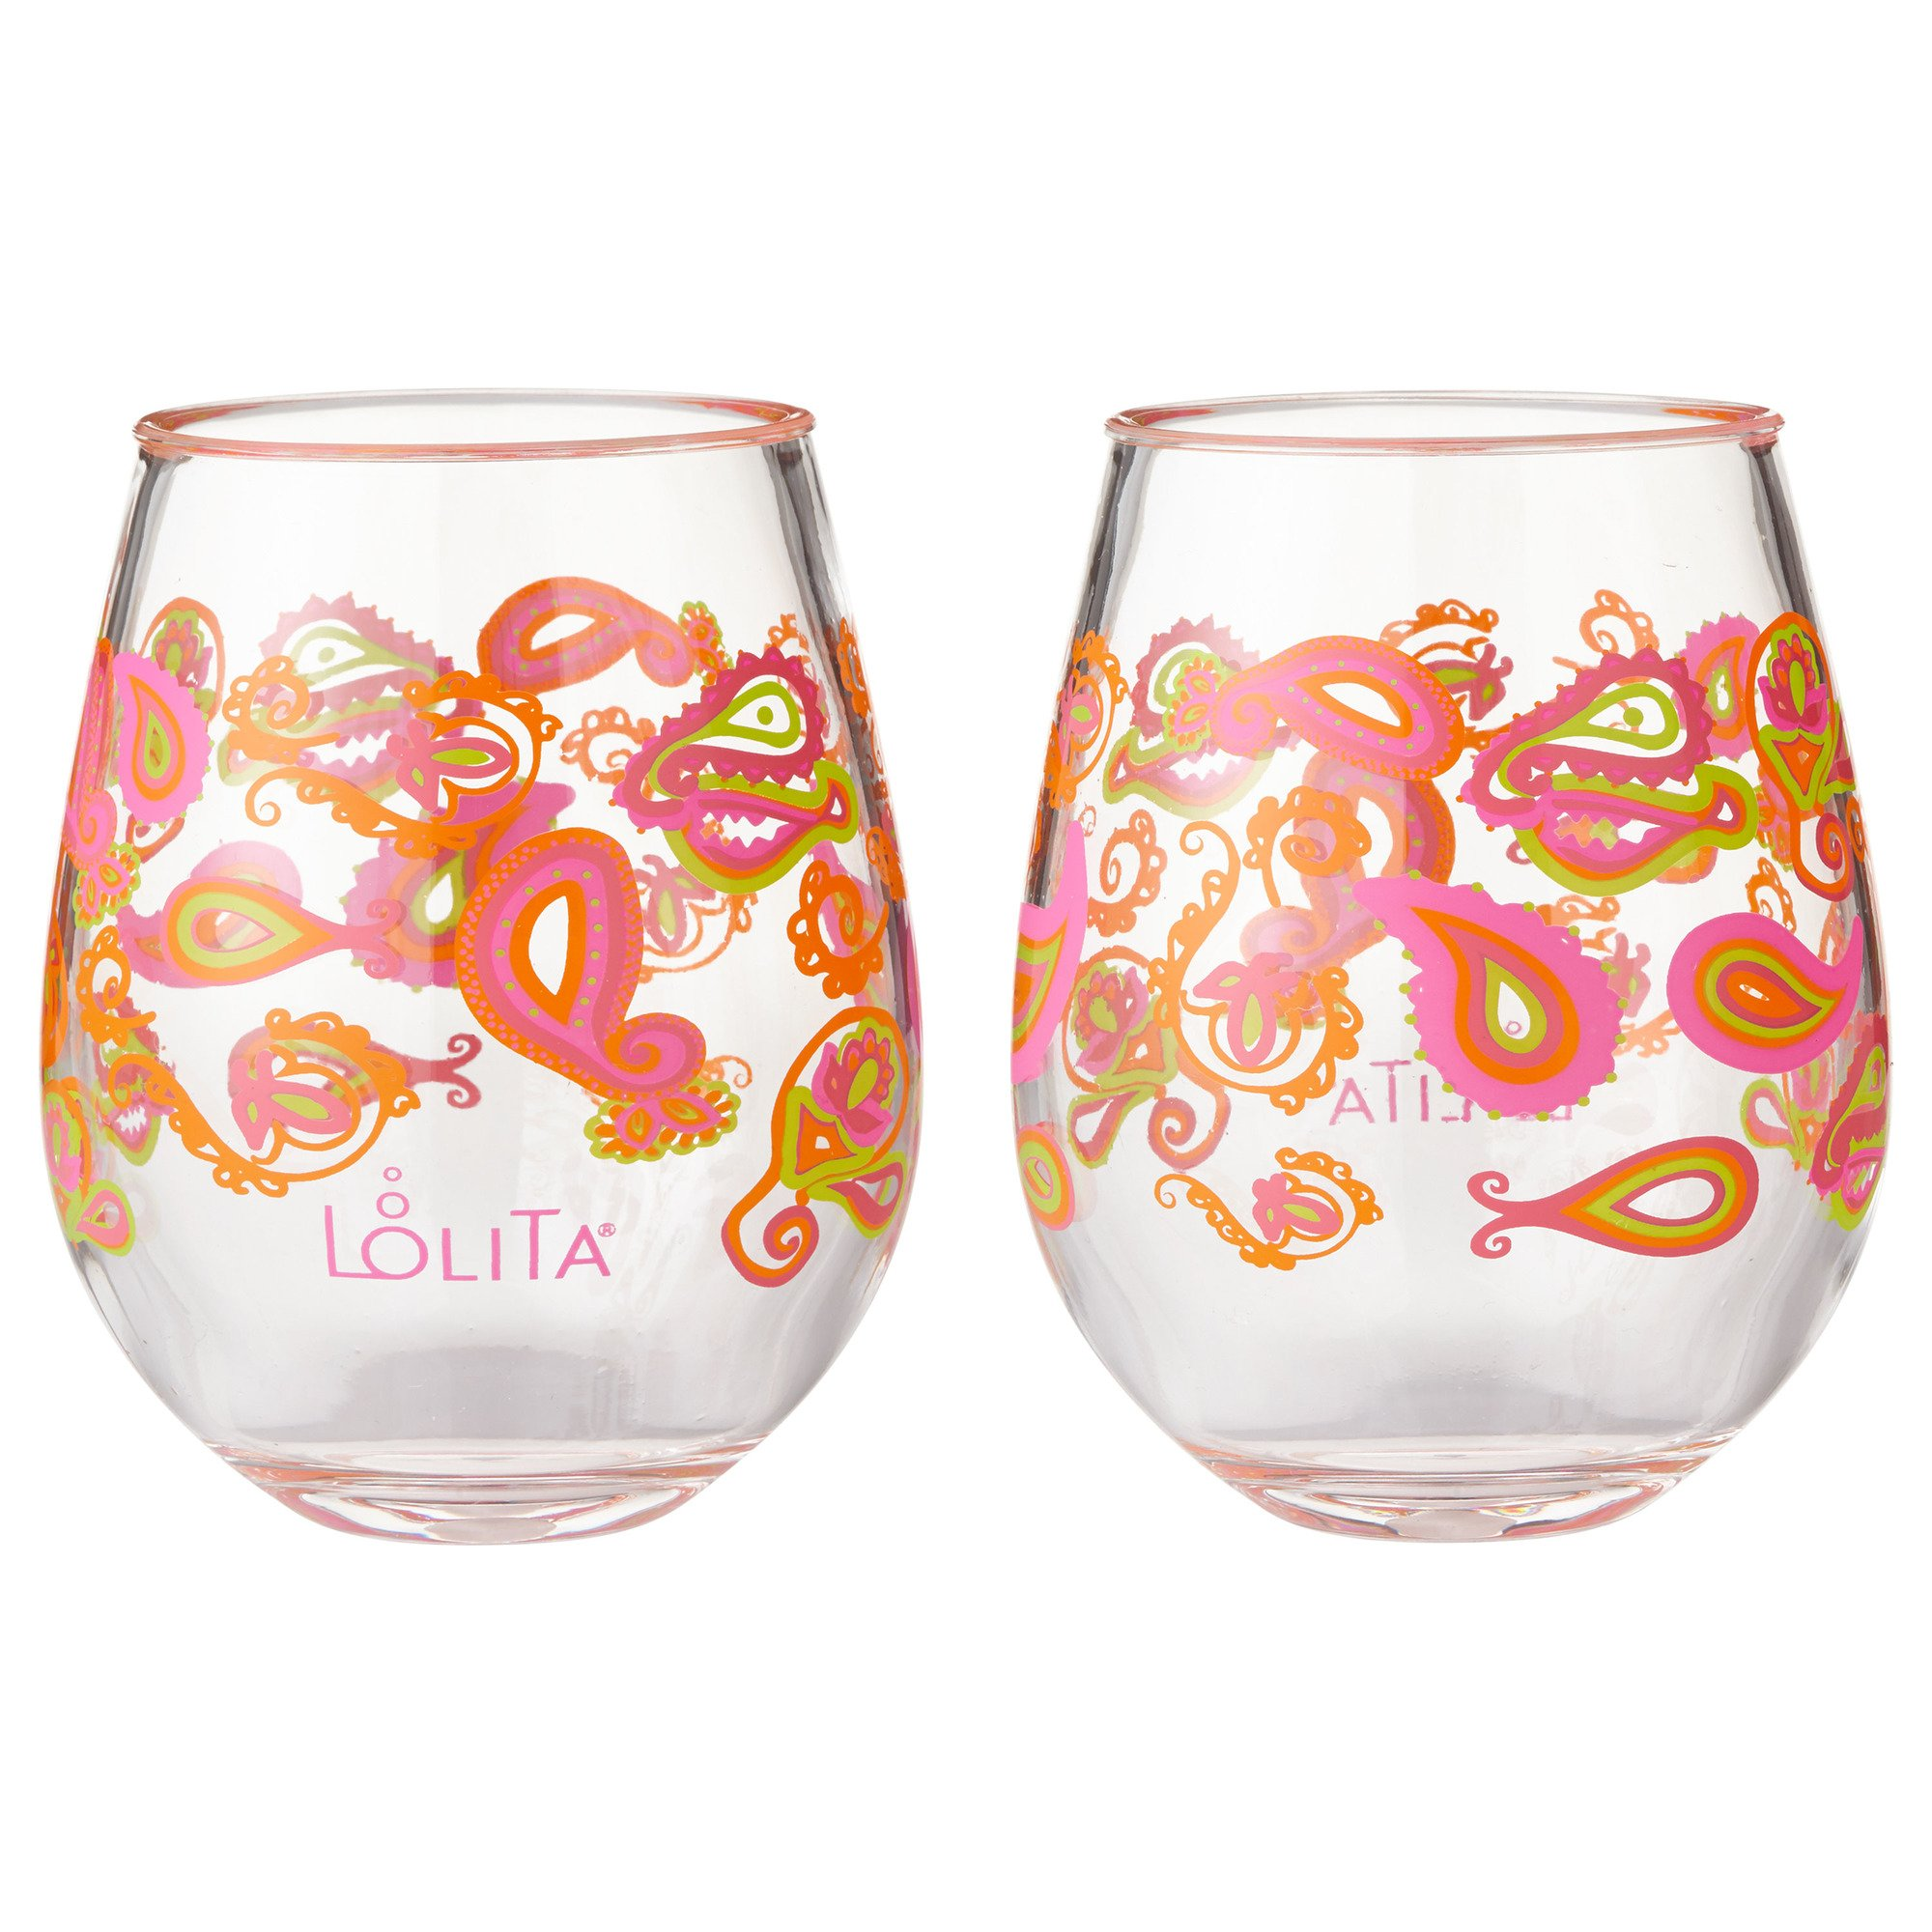 Enesco Designs by Lolita Paisley Acrylic Stemless Wine Glasses, Set of 2, 17 oz.